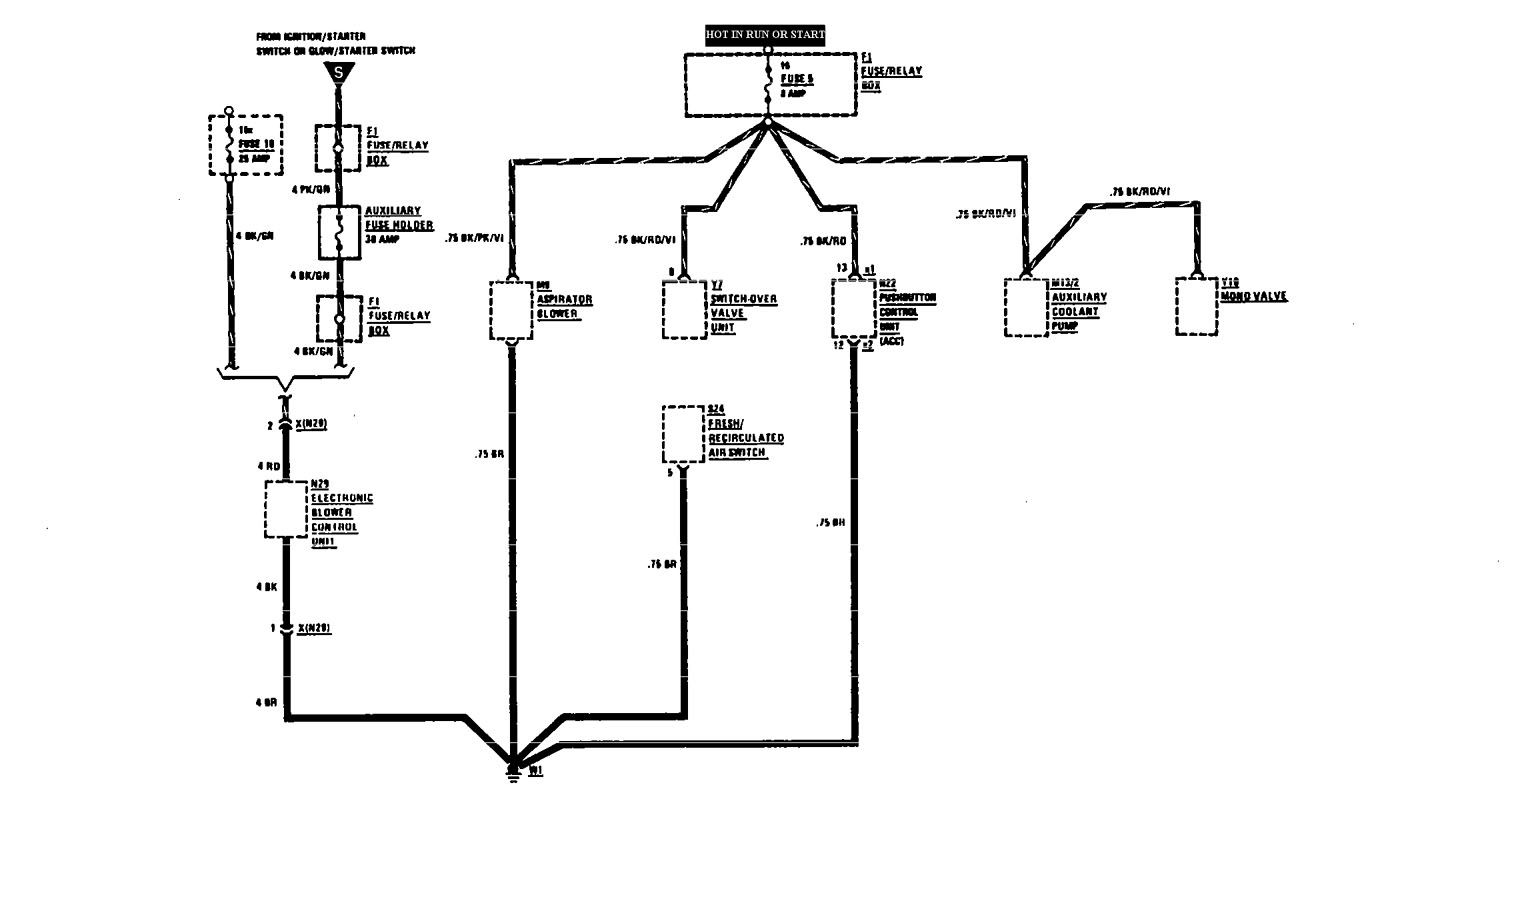 1986 Mercedes Benz 560 Parts Diagram. Mercedes. Auto